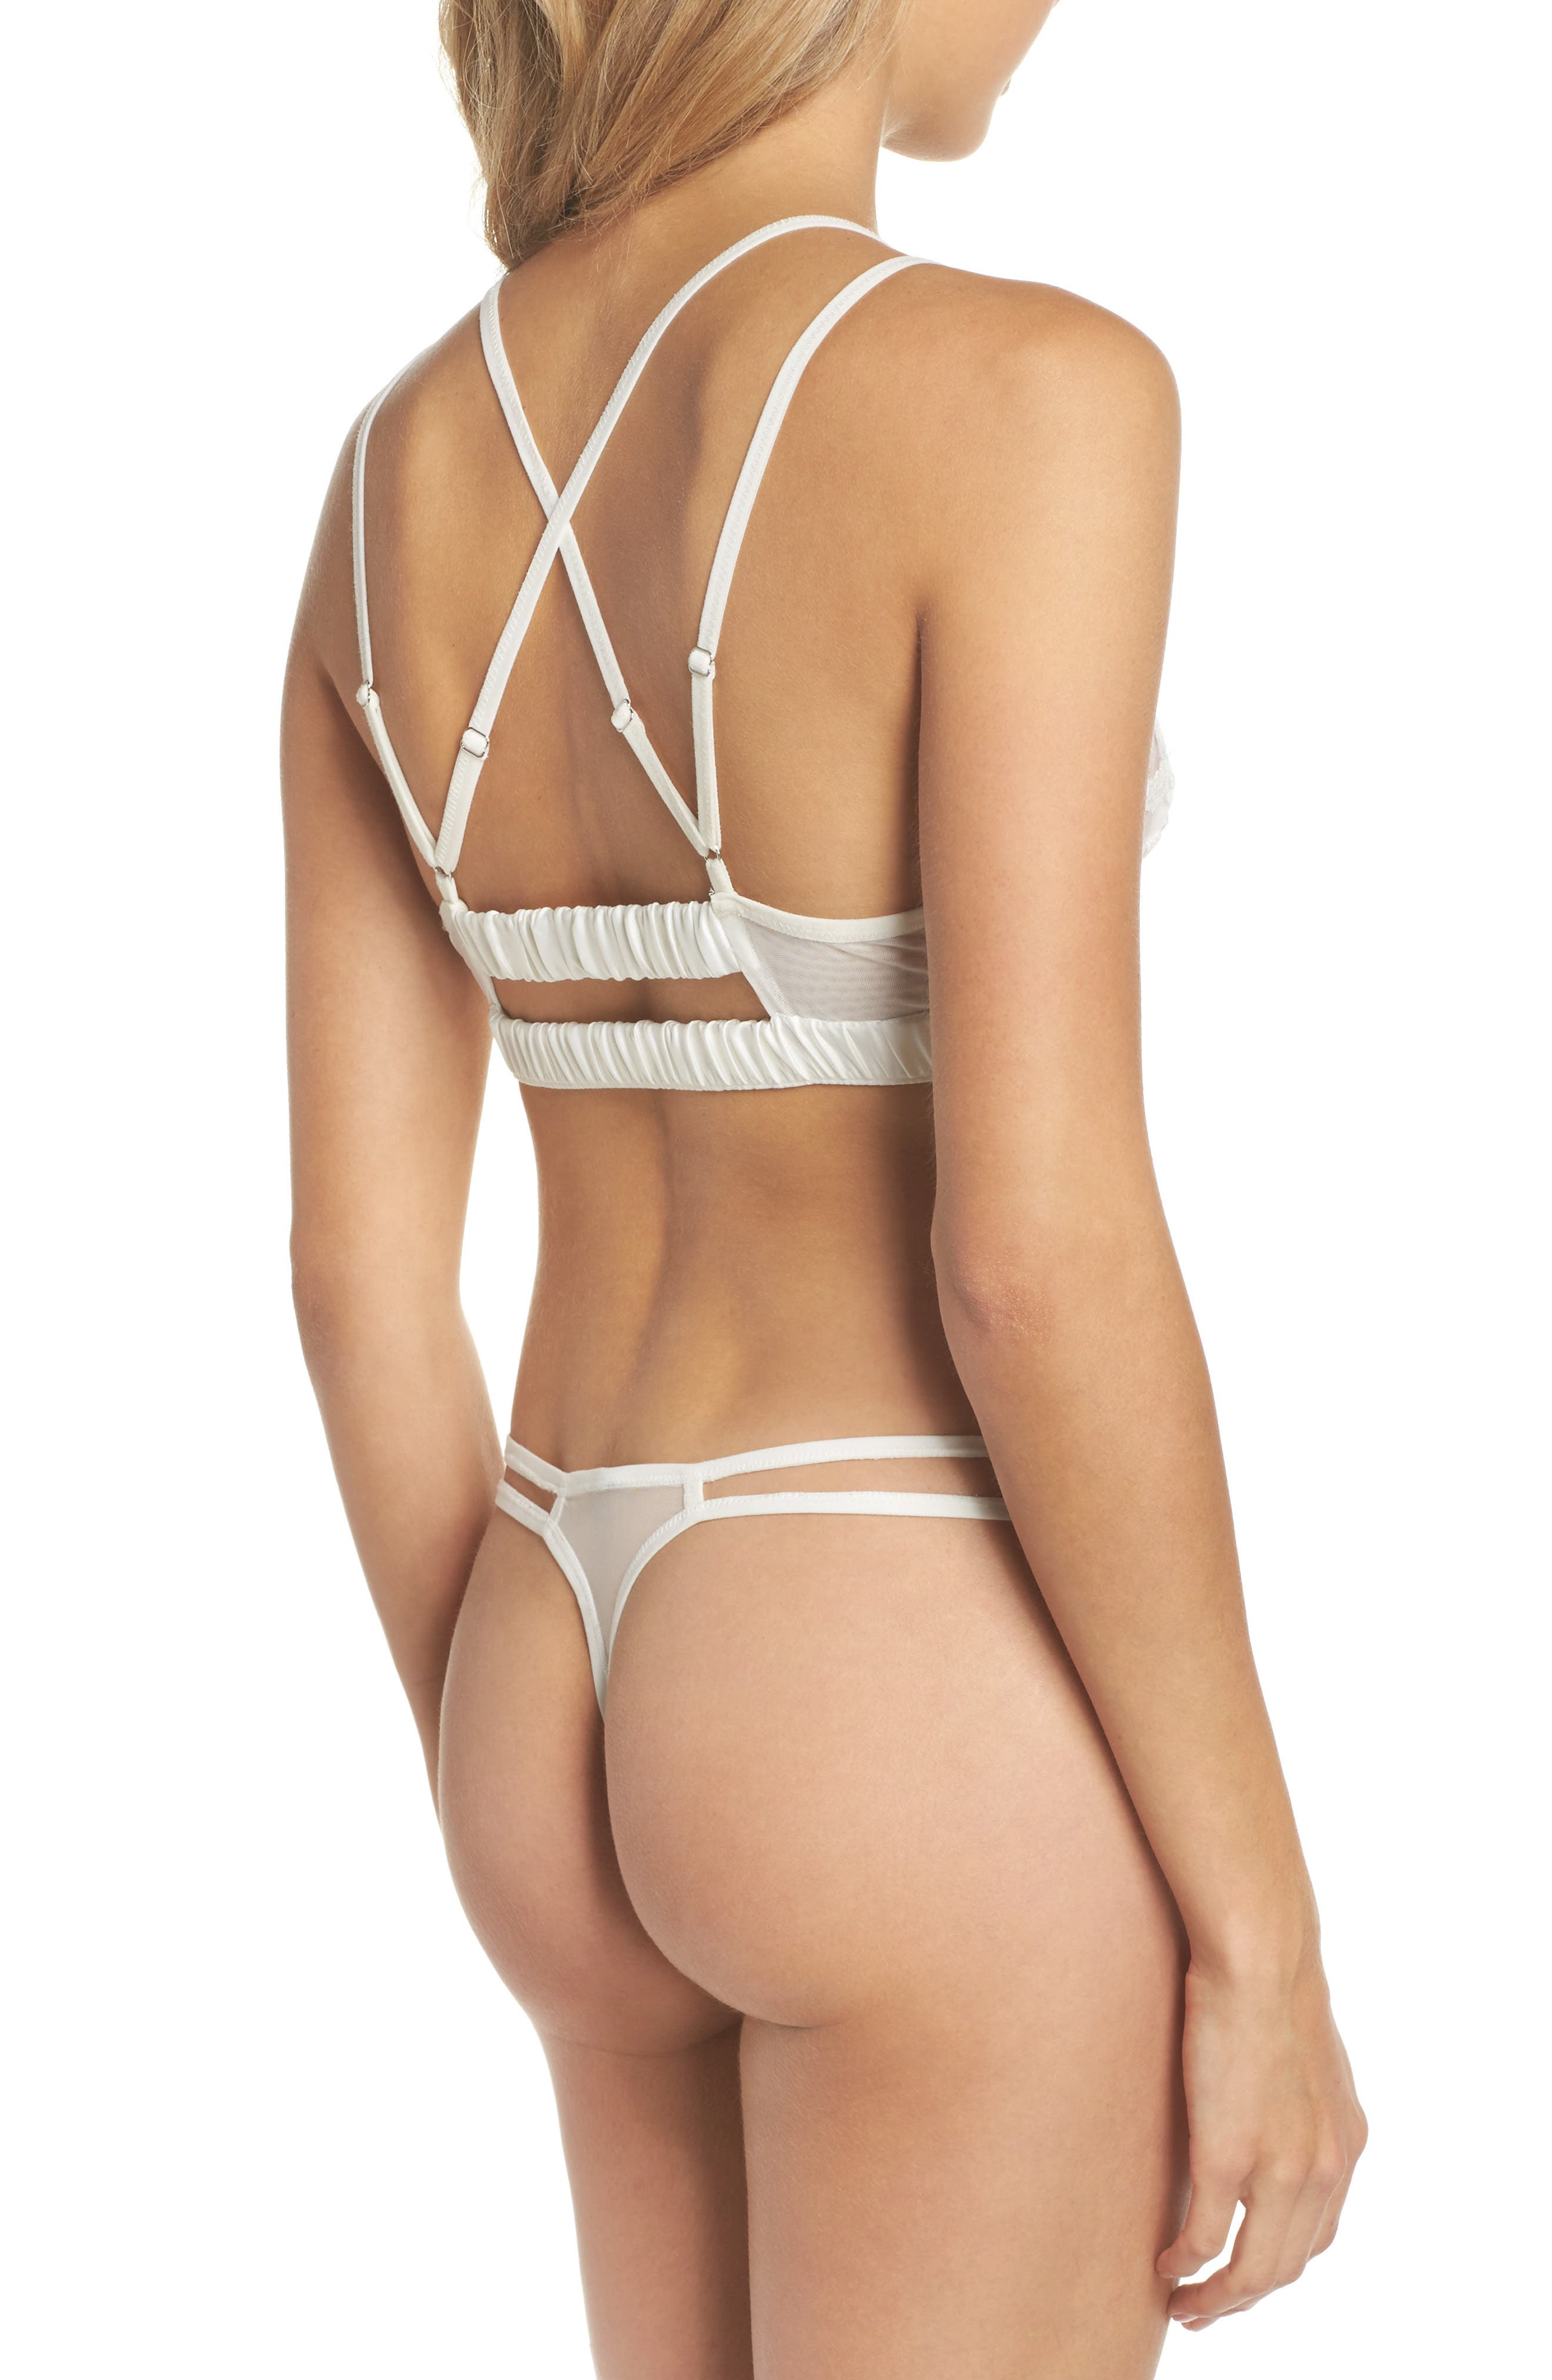 Thistle & Spire Cornelia Thong,                             Alternate thumbnail 6, color,                             Ivory